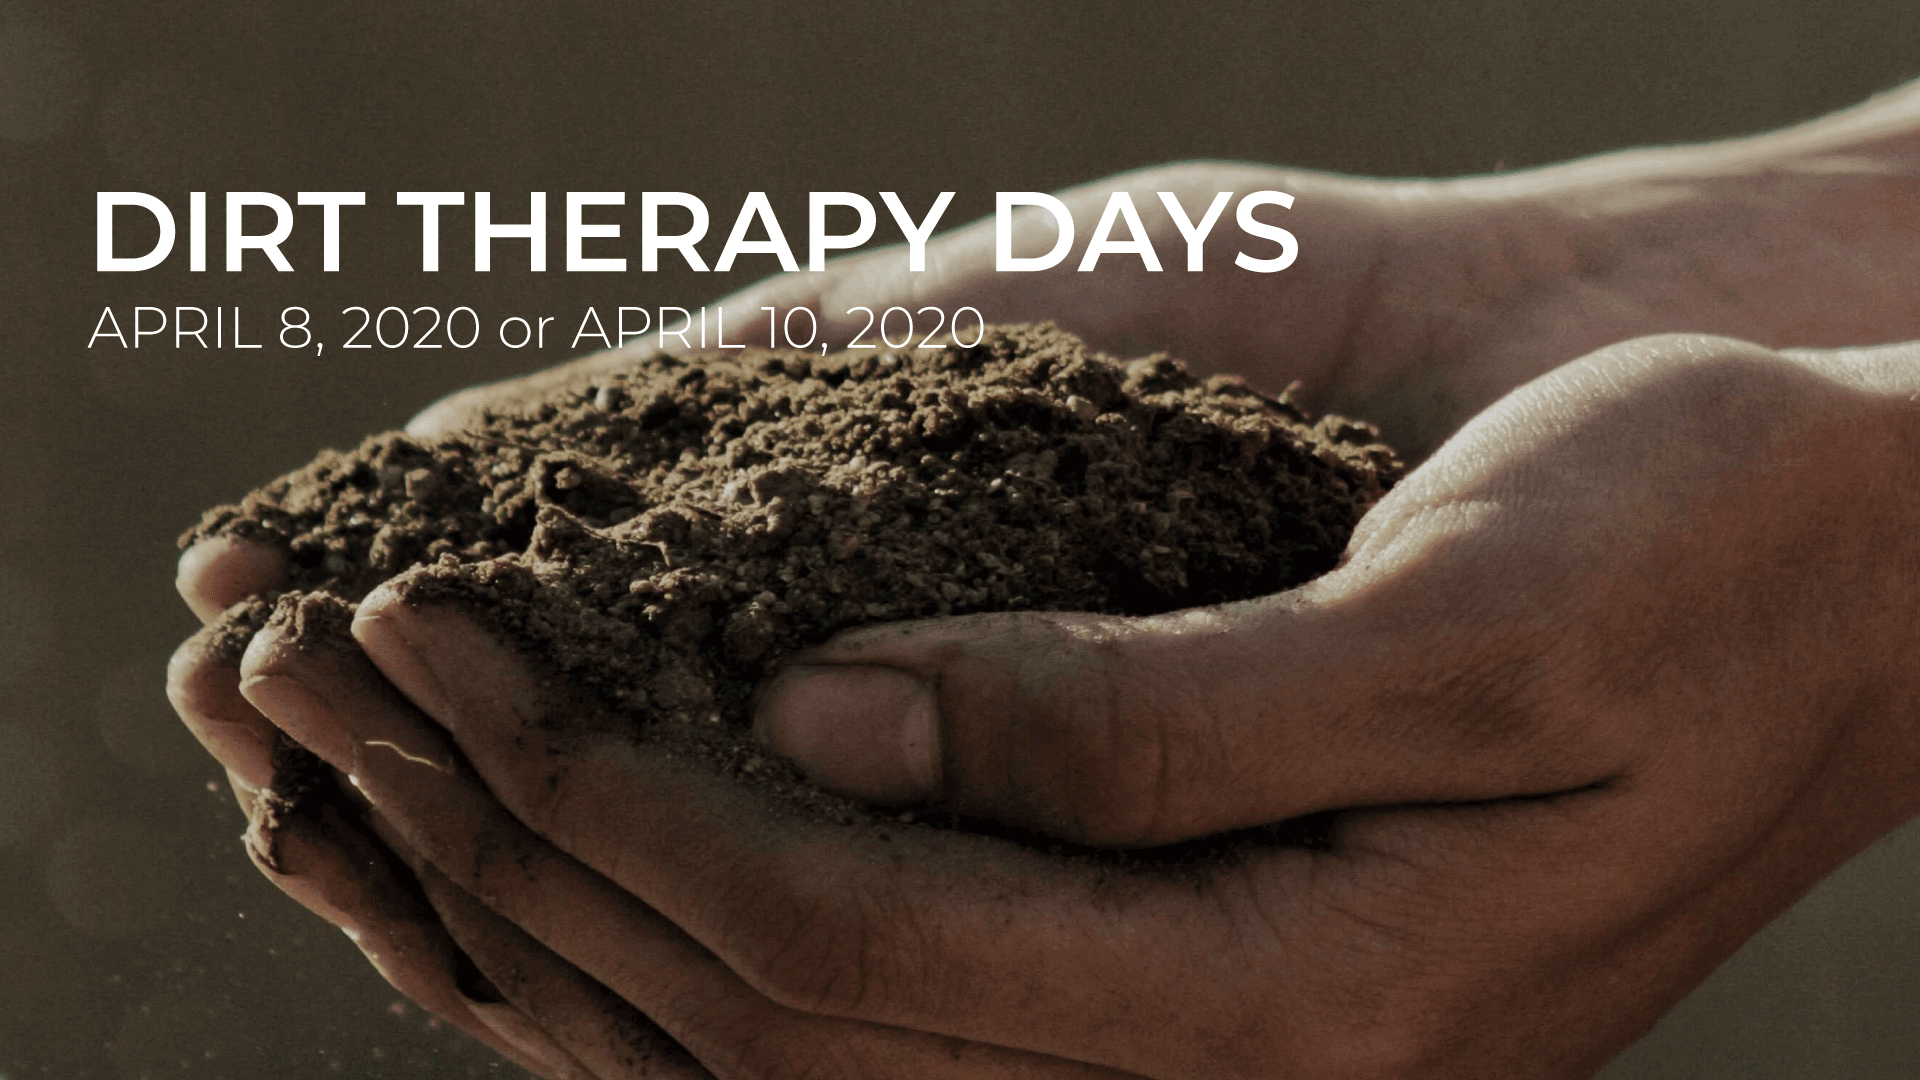 Dirt-Therapy-Days-April-8-10,2020(1)